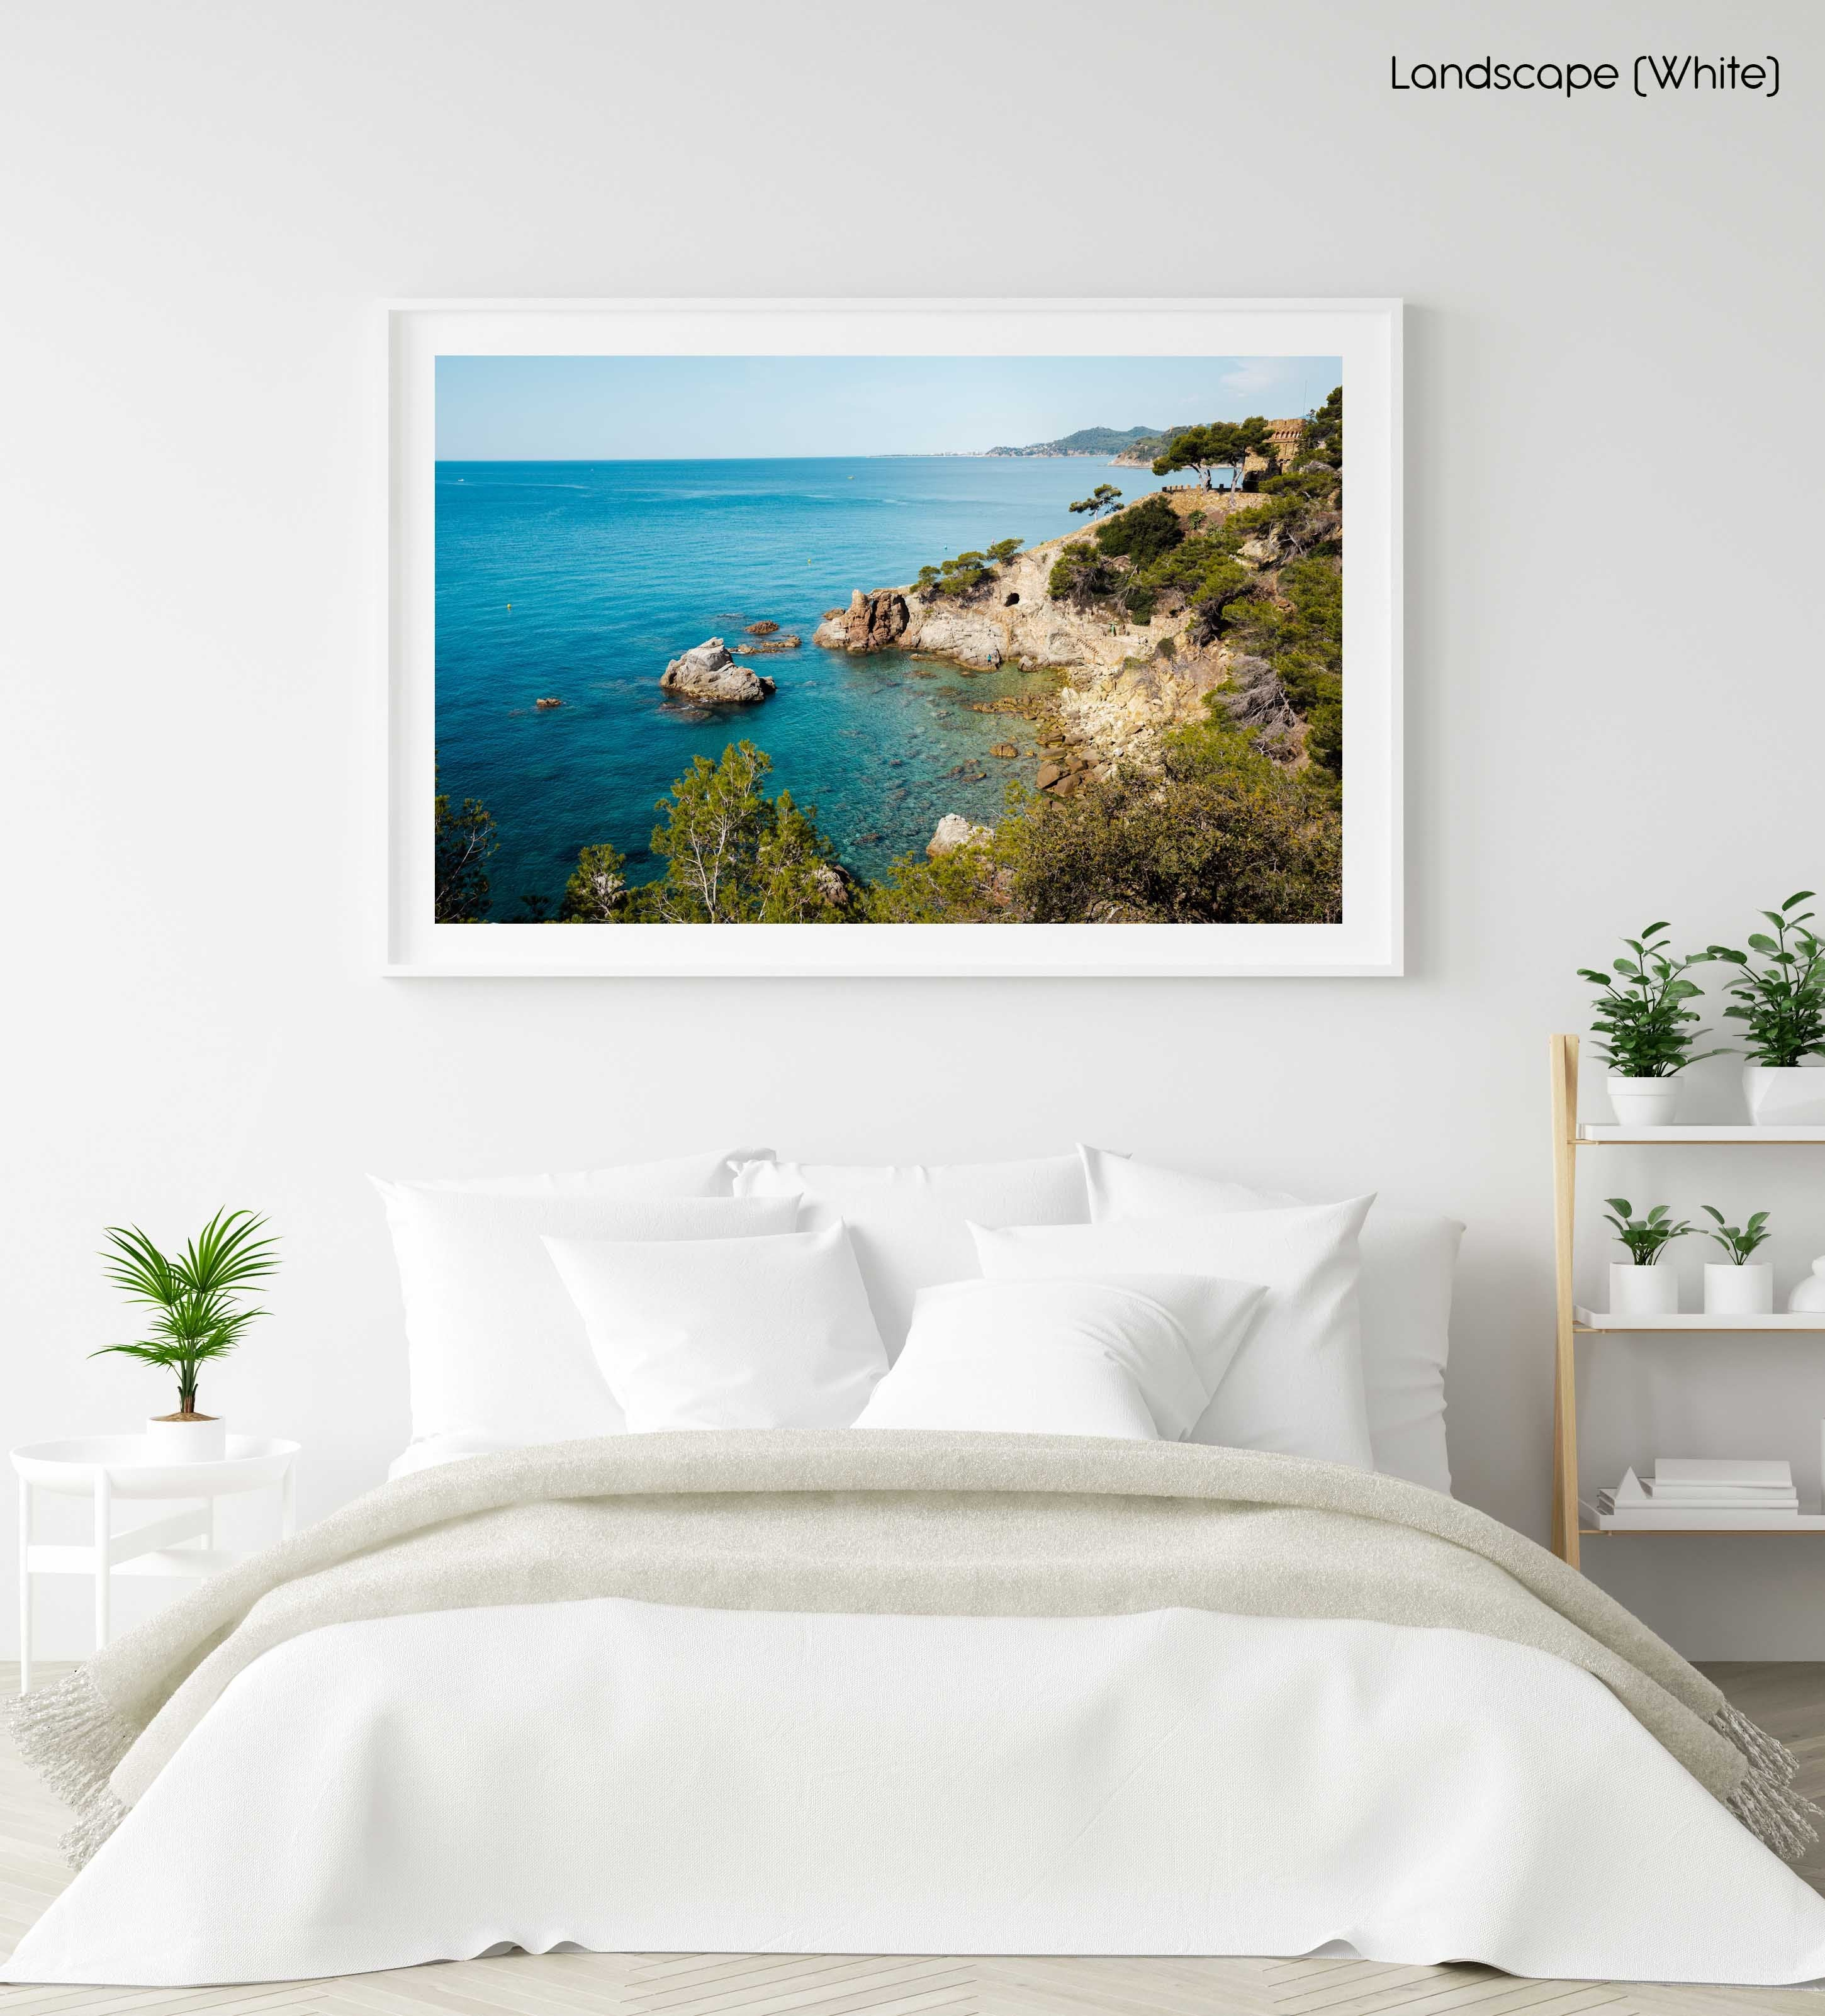 Green trees and bright blue water along Costa Brava coast in a white fine art frame